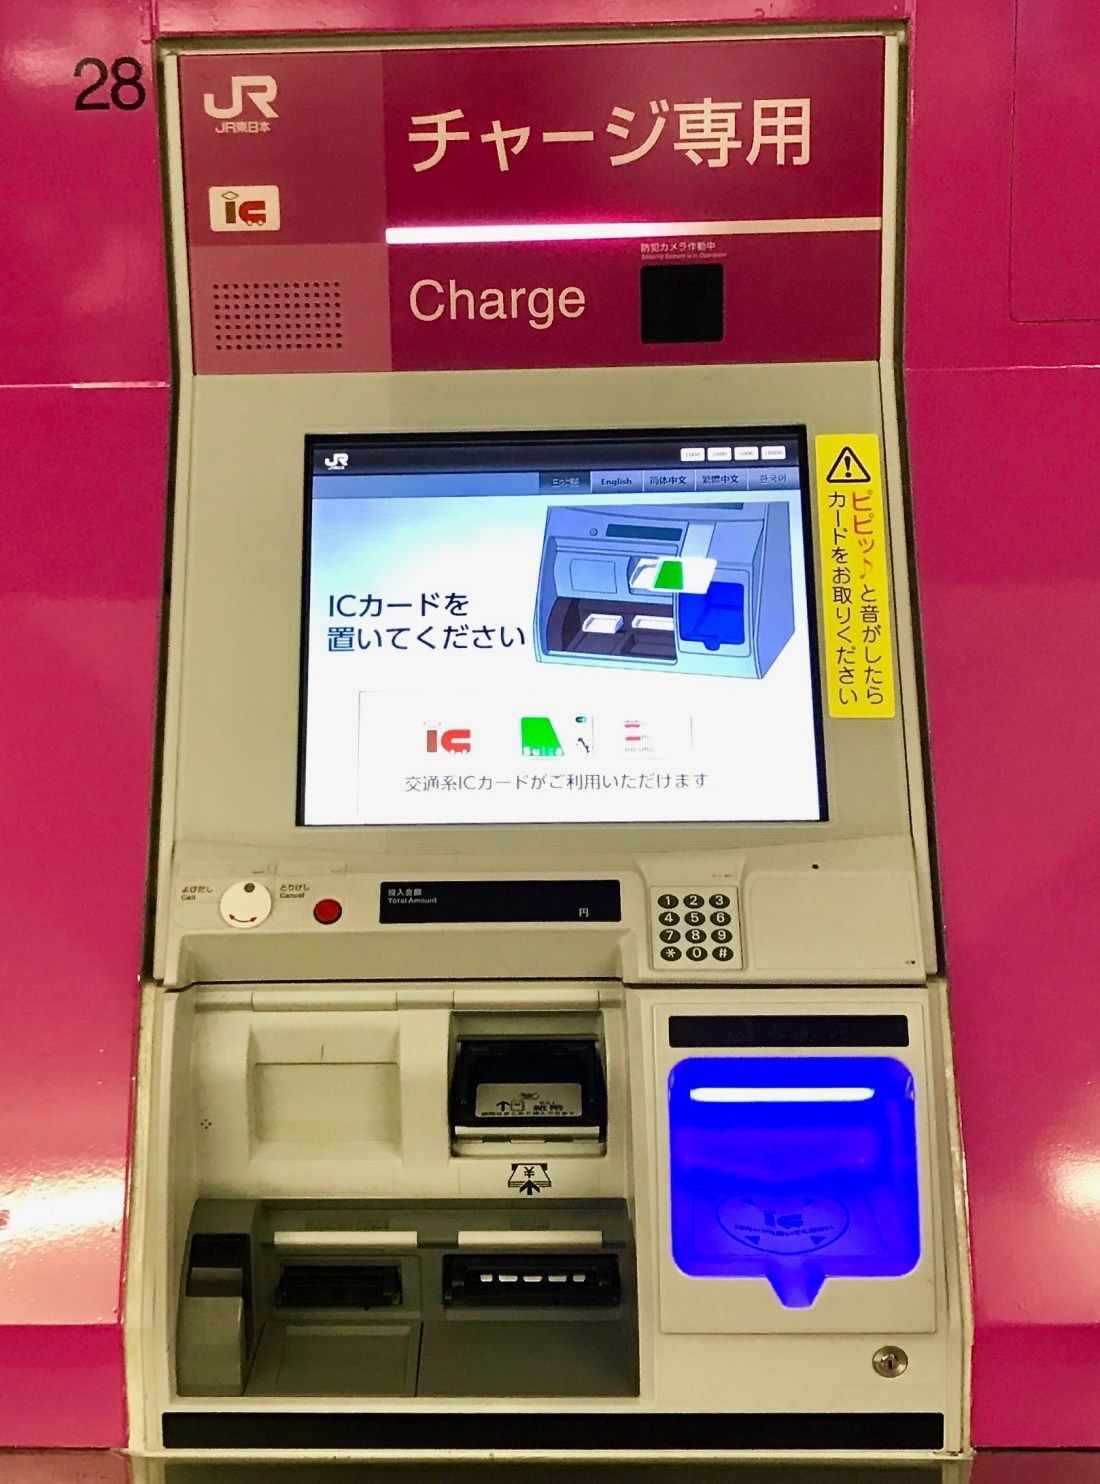 Suica Charge Kiosk at JR station